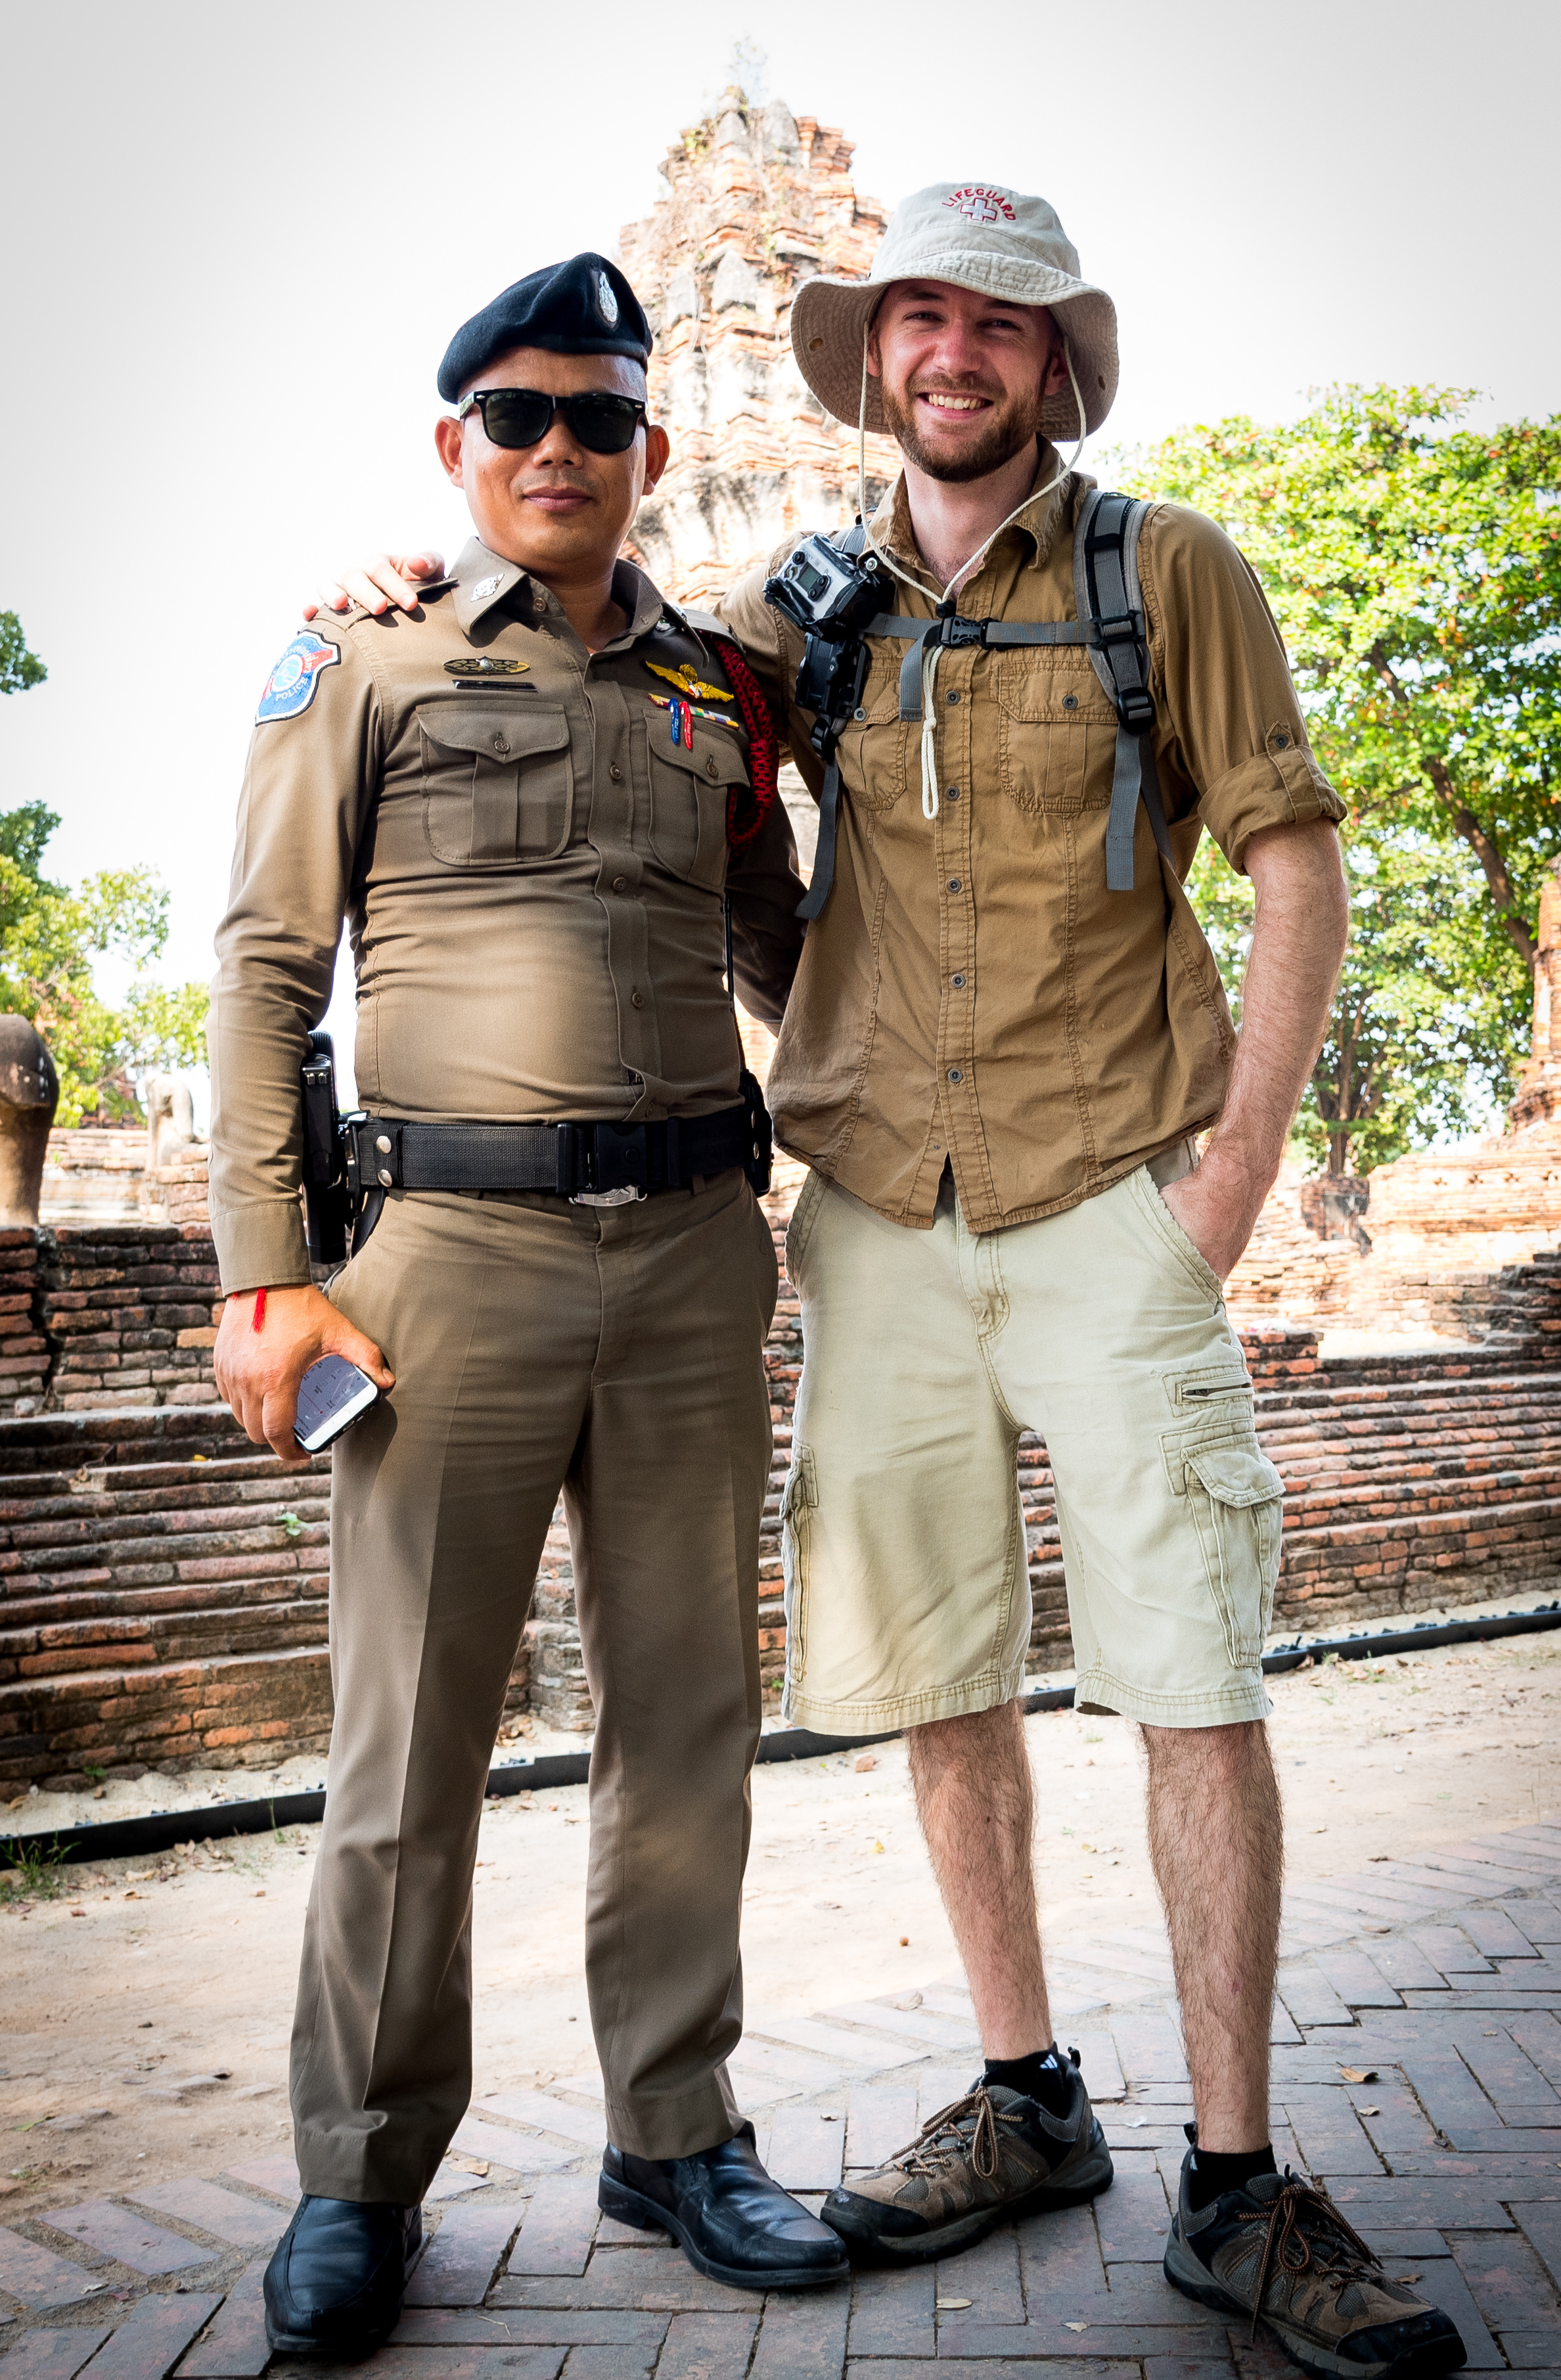 The guard who wanted to take a photo with me.